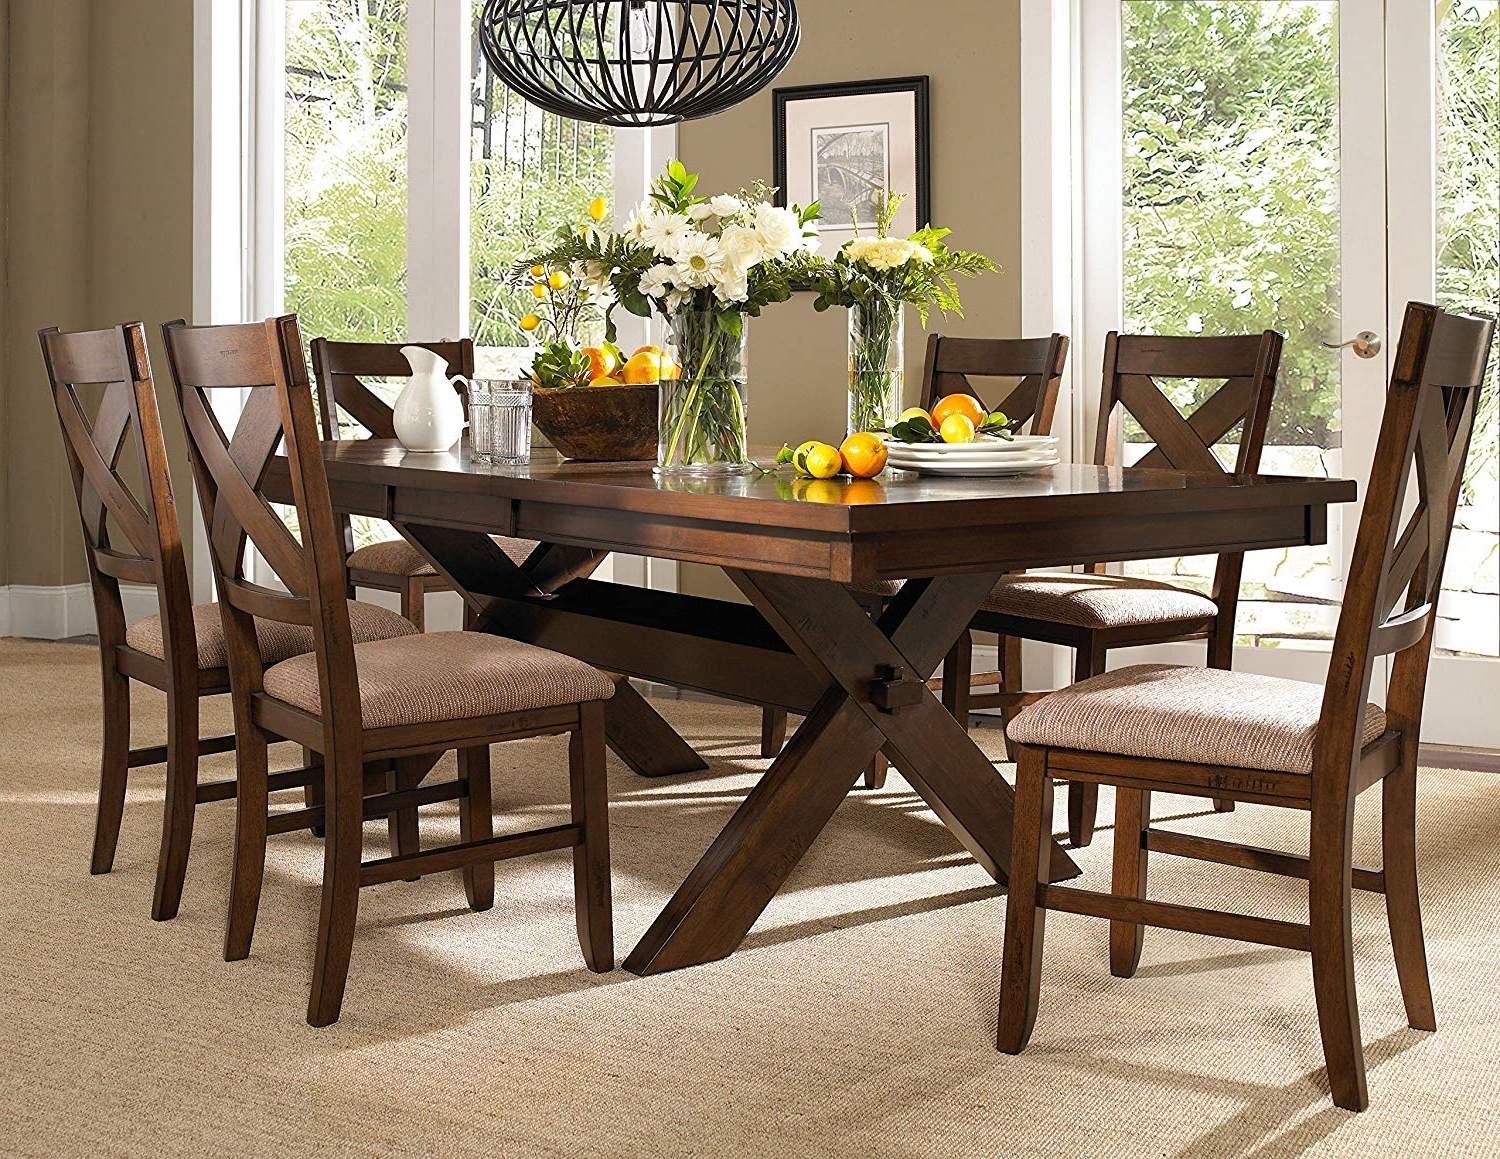 Newest Amazon – Powell 713 417M2 7 Piece Wooden Kraven Dining Set With Wood Dining Tables And 6 Chairs (View 9 of 25)